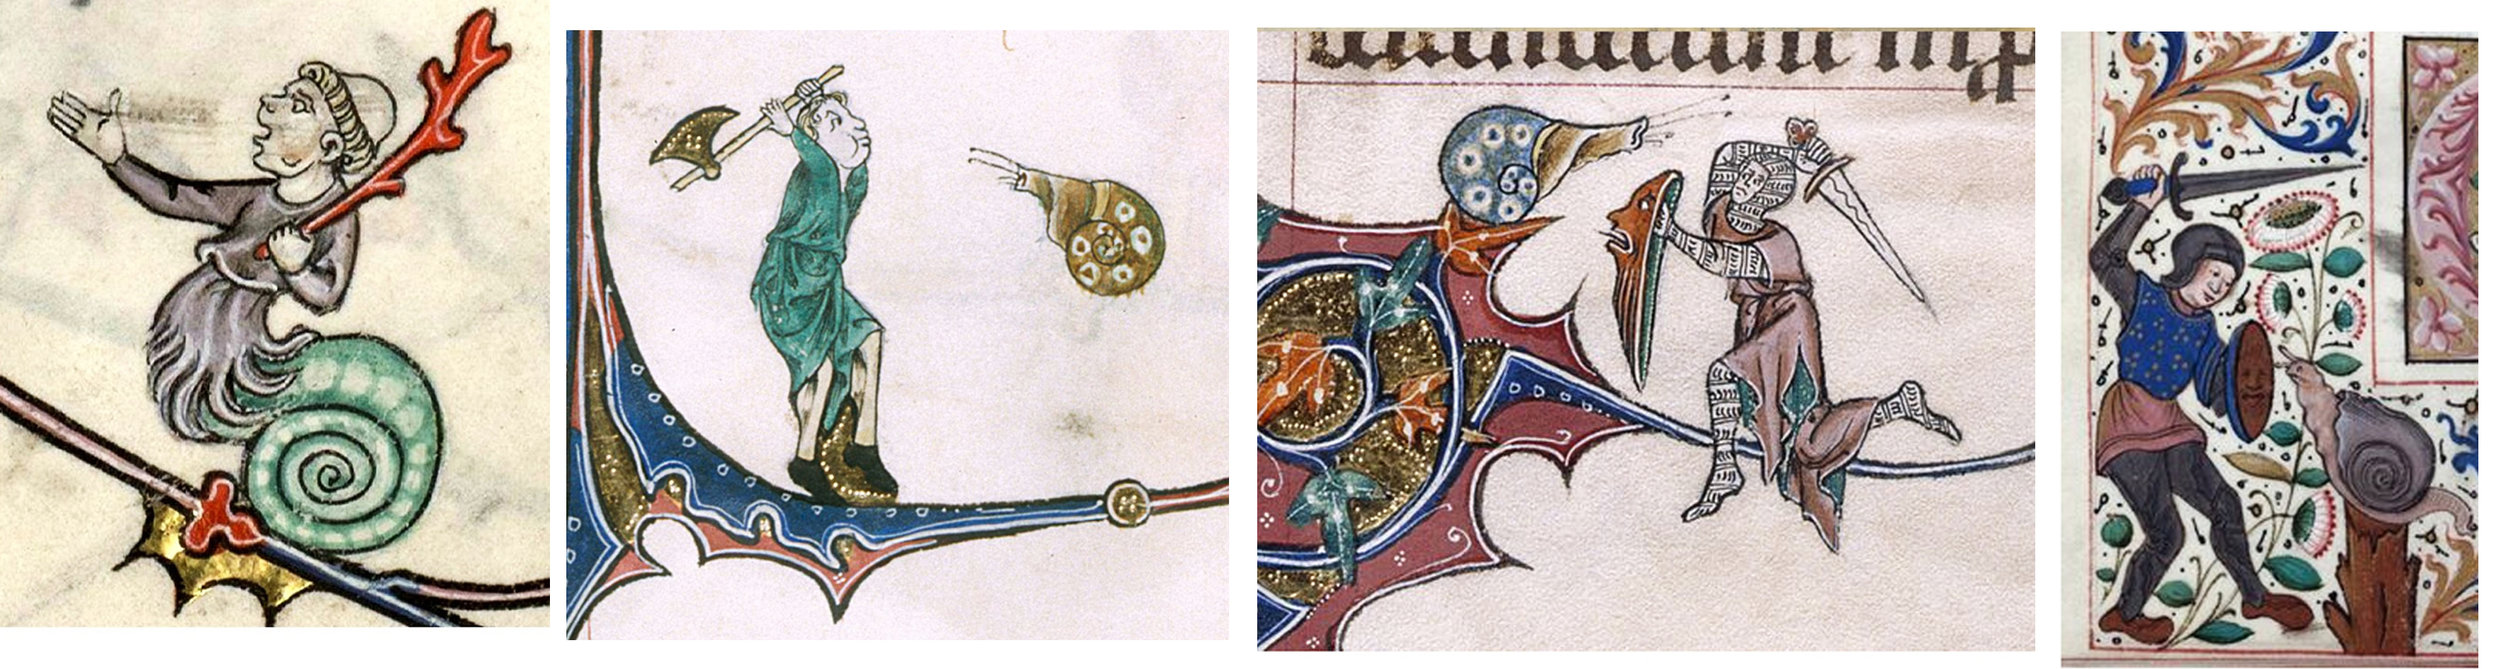 5 blog marginalia snails.jpg